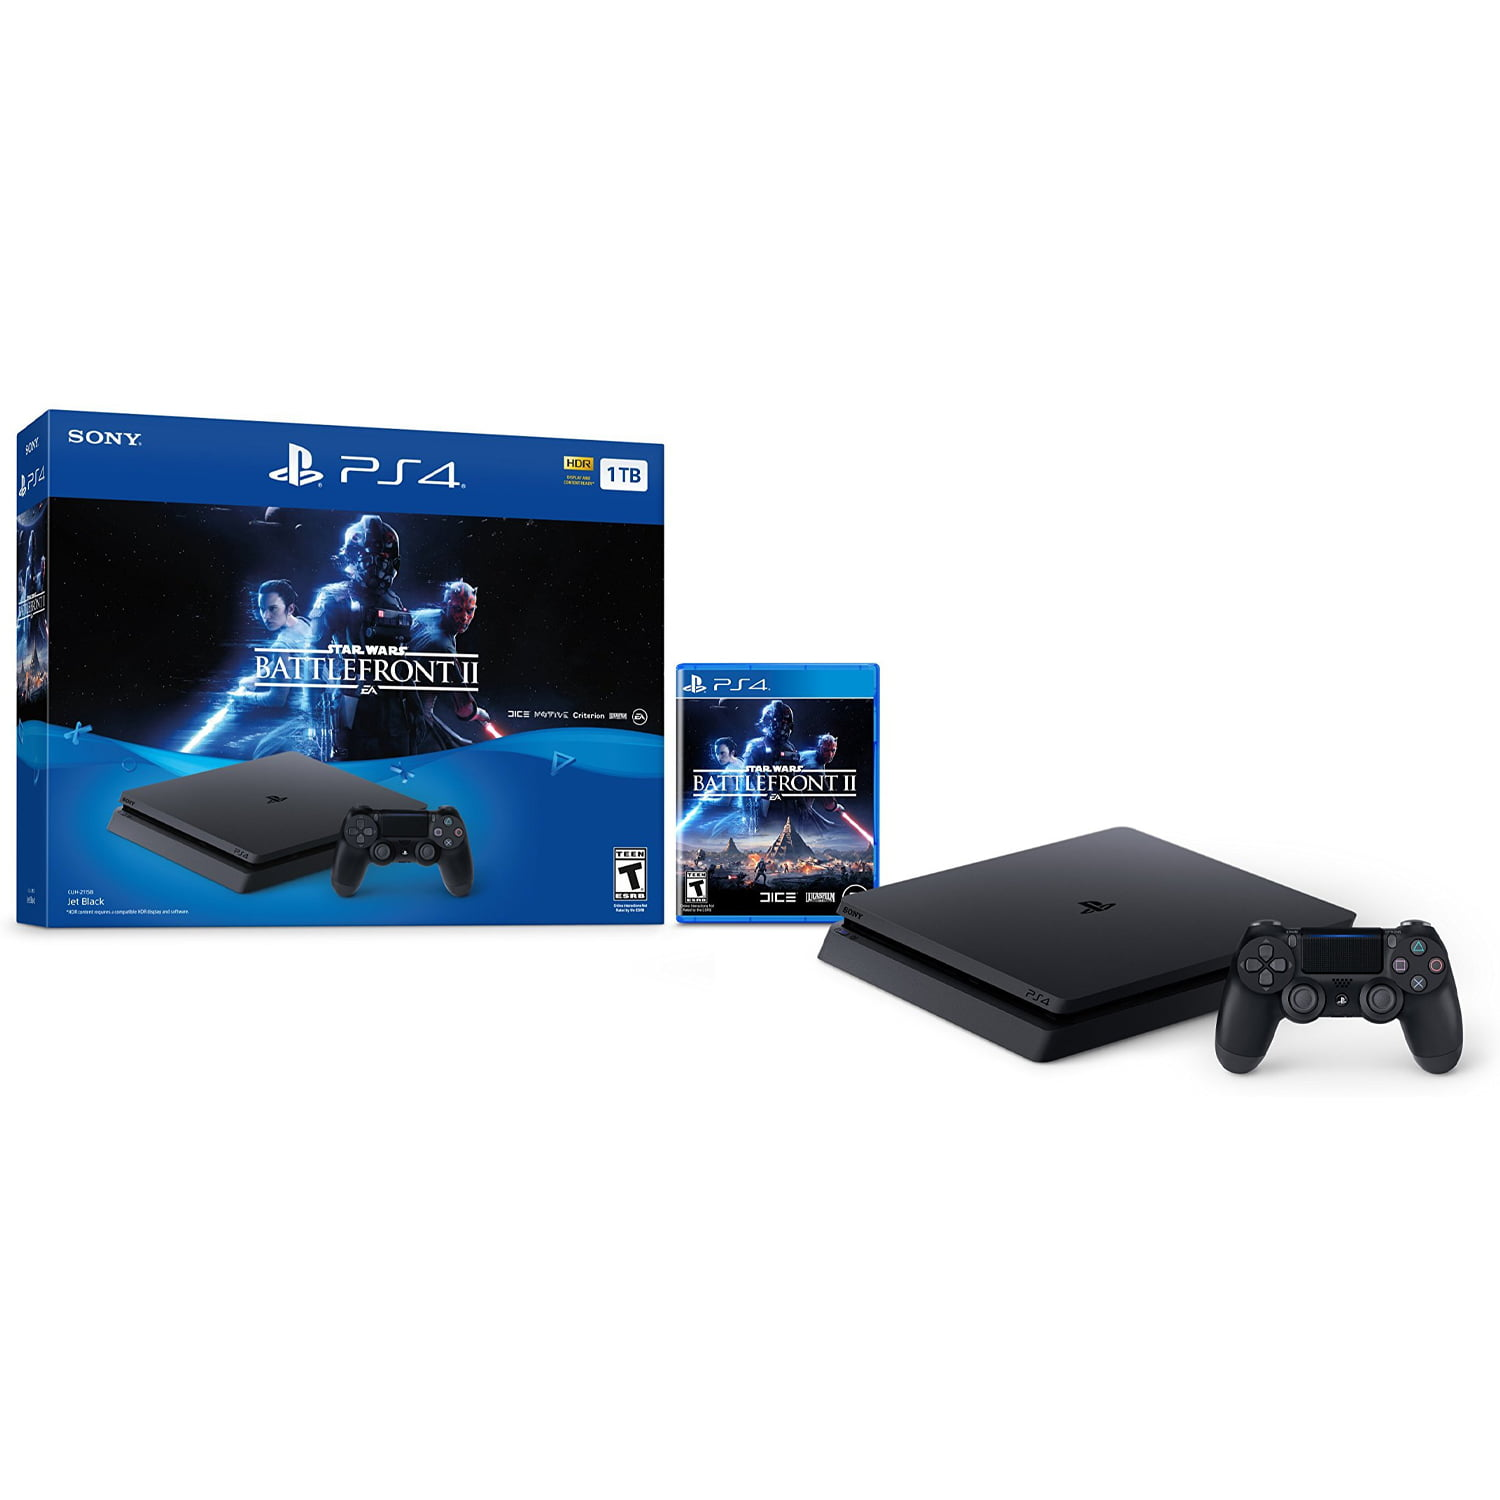 Sony Playstation 4 1TB Slim System with Star Wars Battlefront 2 (PlayStation 4) by Sony